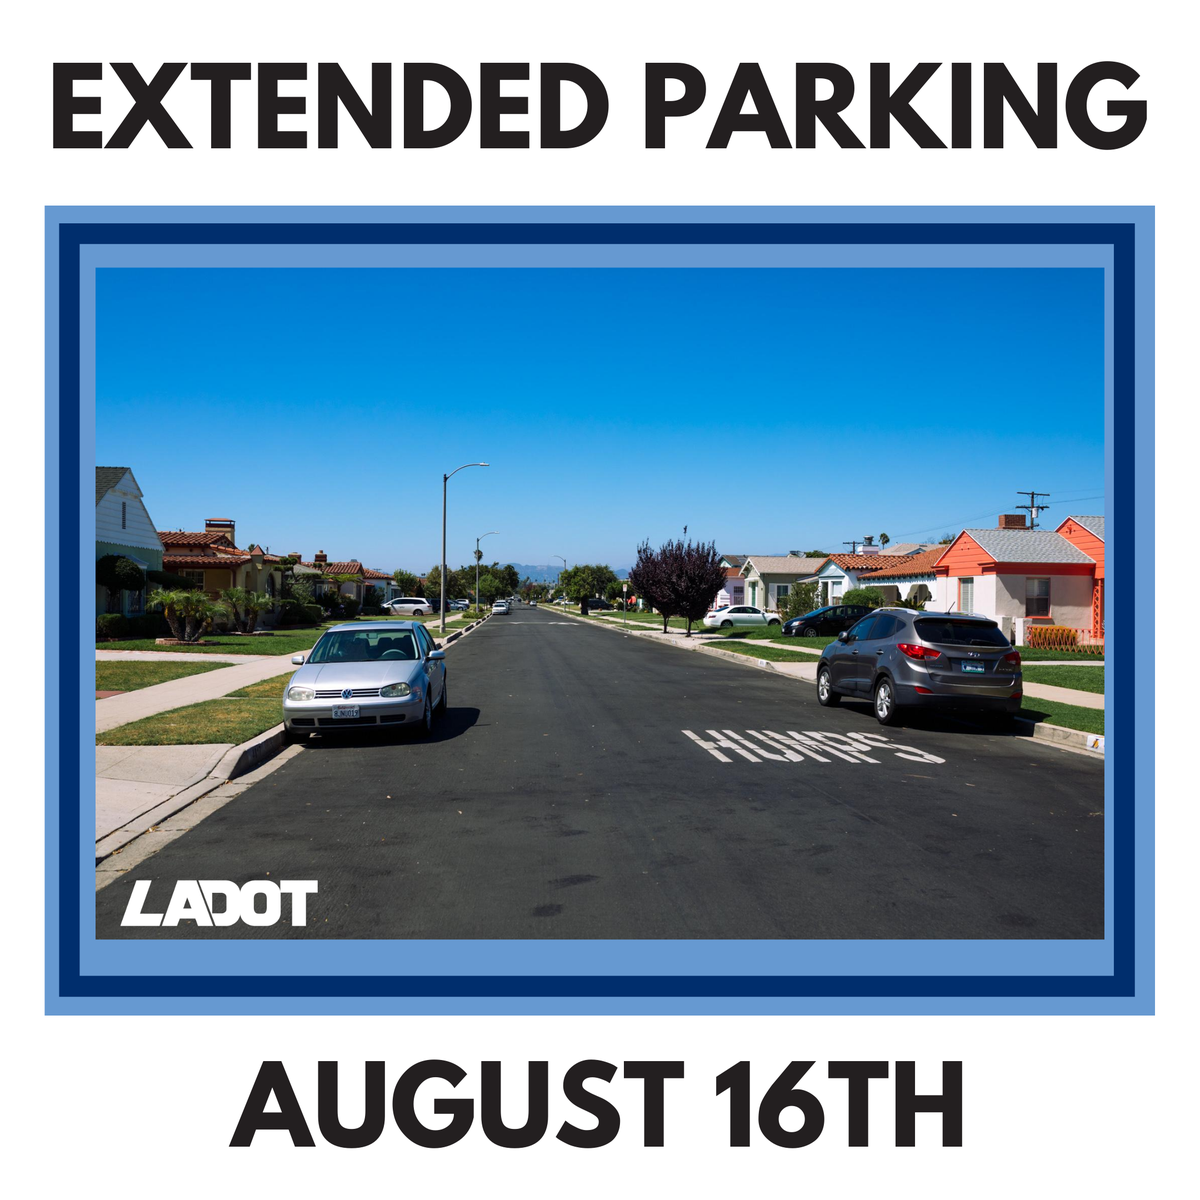 While we continue working together to #flattenthecurve, we have extended our limited relaxed parking regulations until August 16. Learn more here: ladot.lacity.org/coronavirus/la…